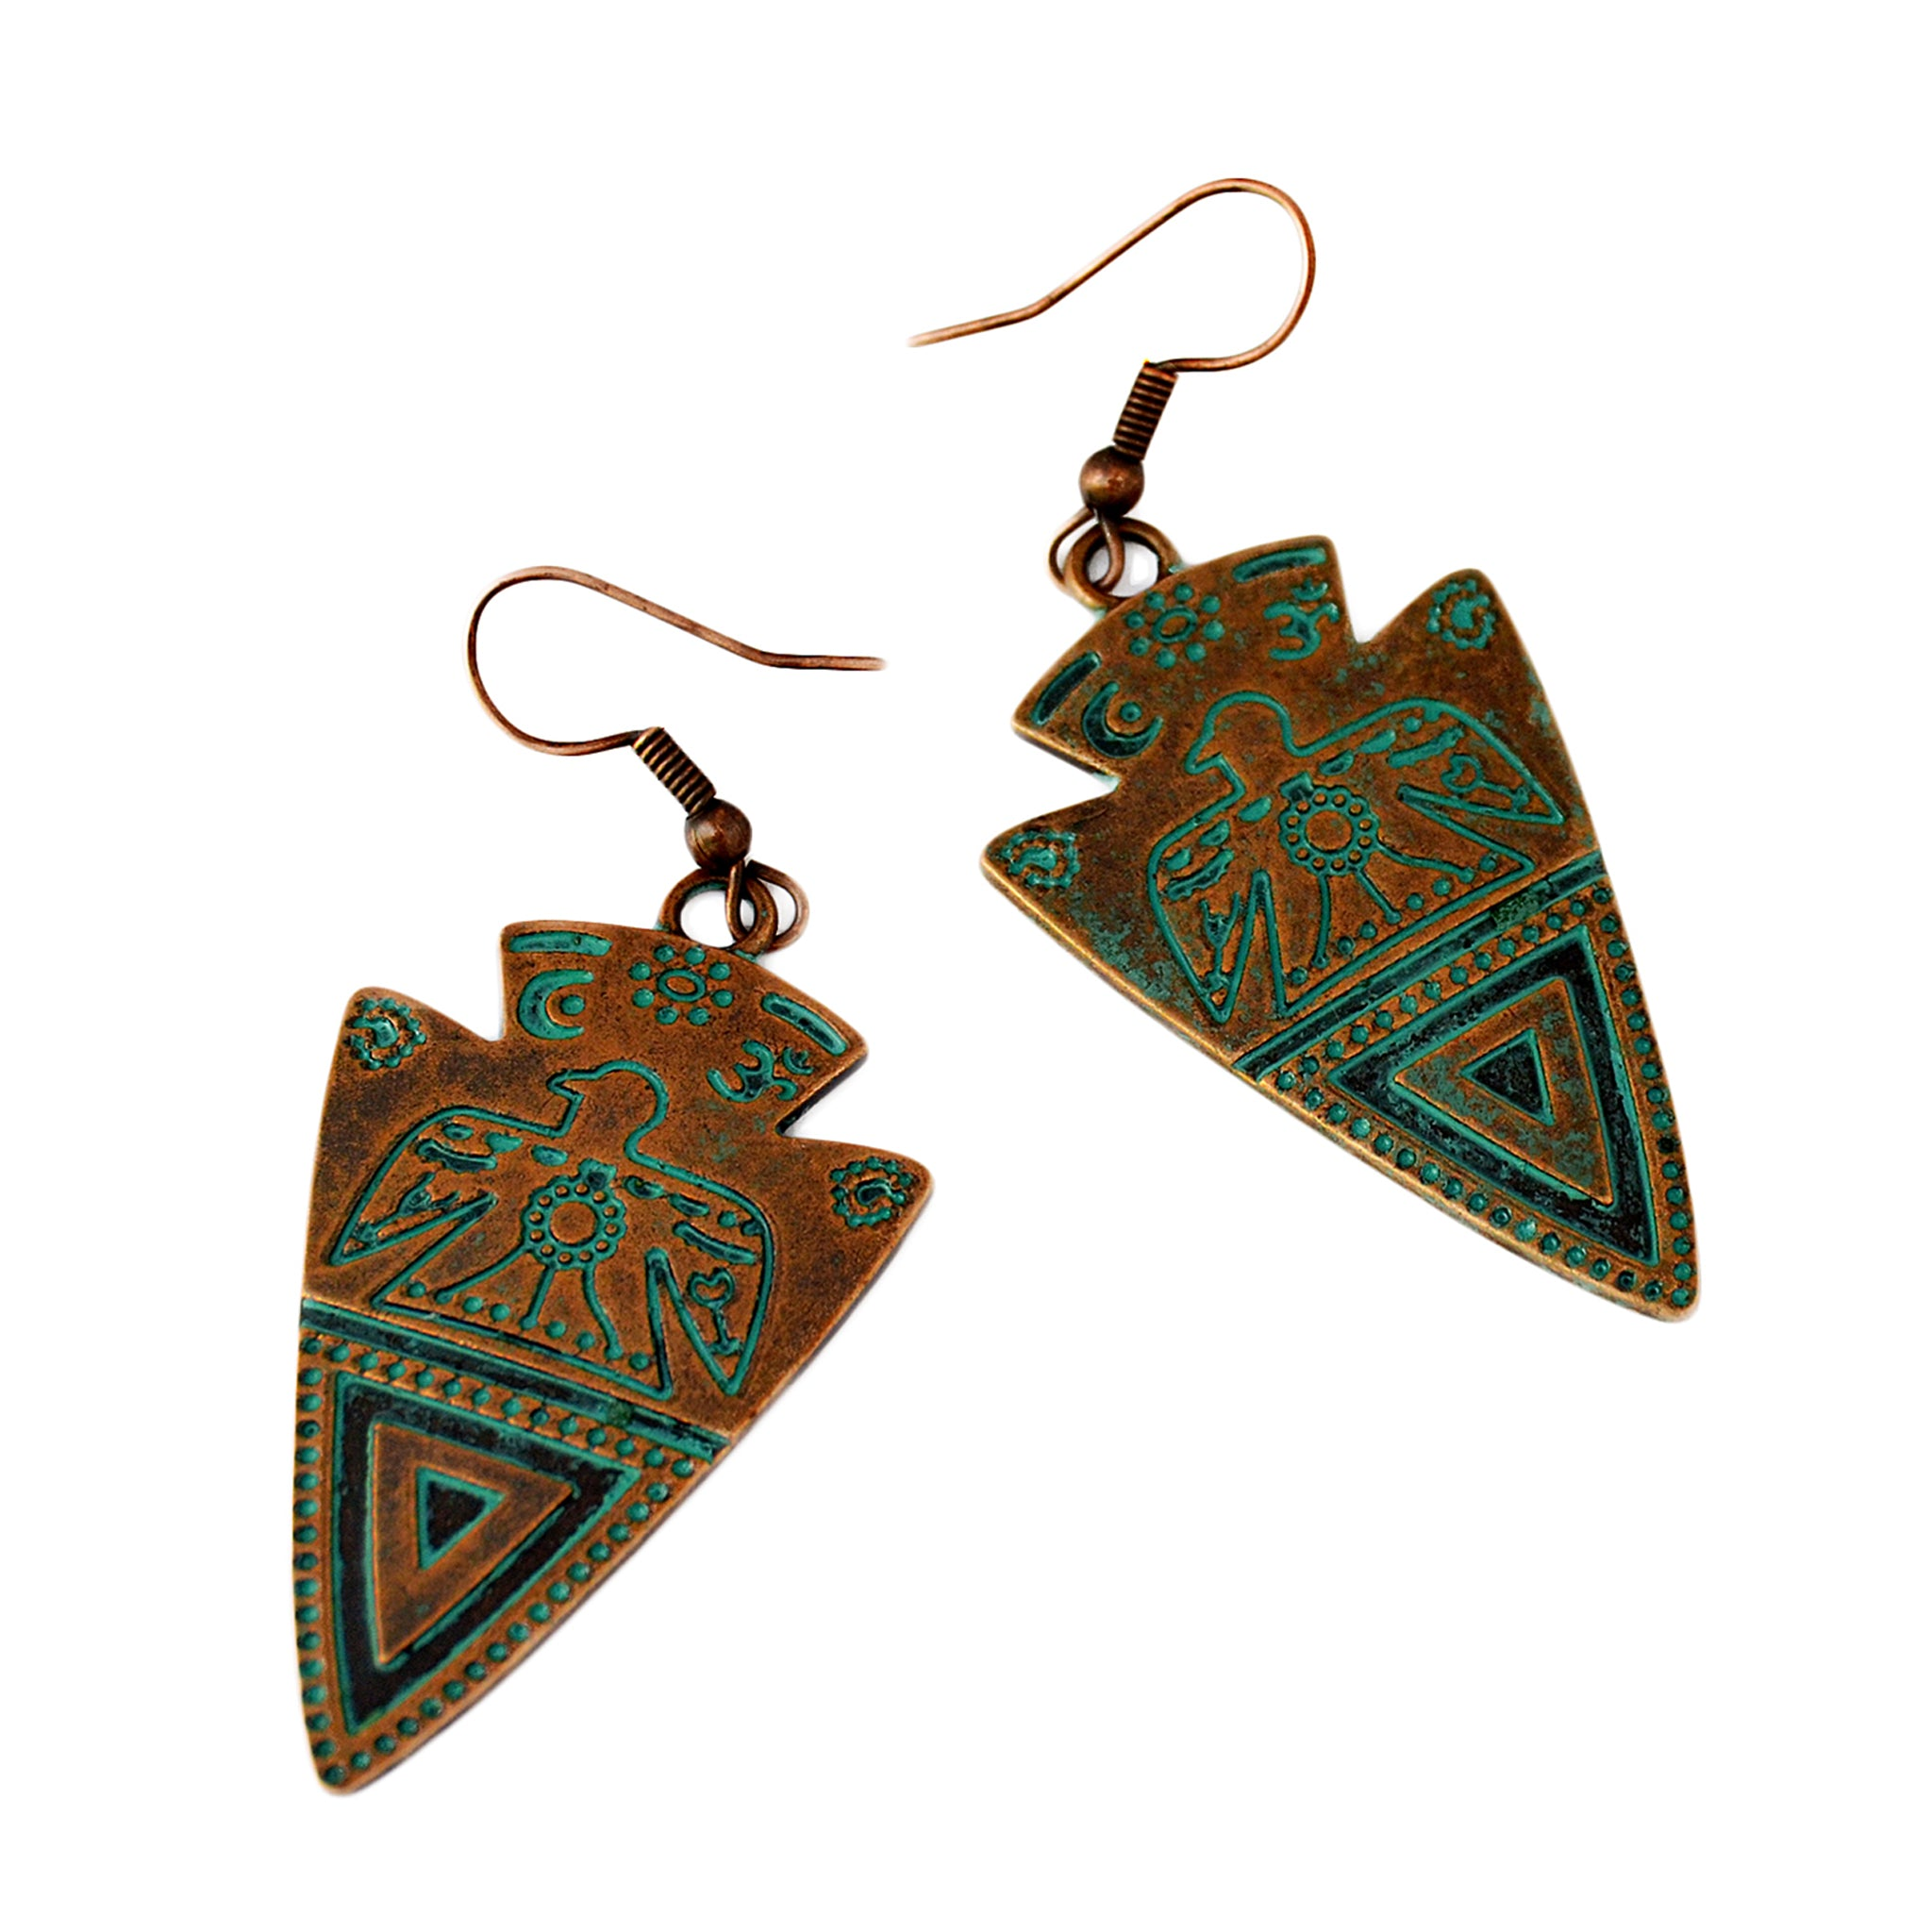 Verdigris aztec earrings